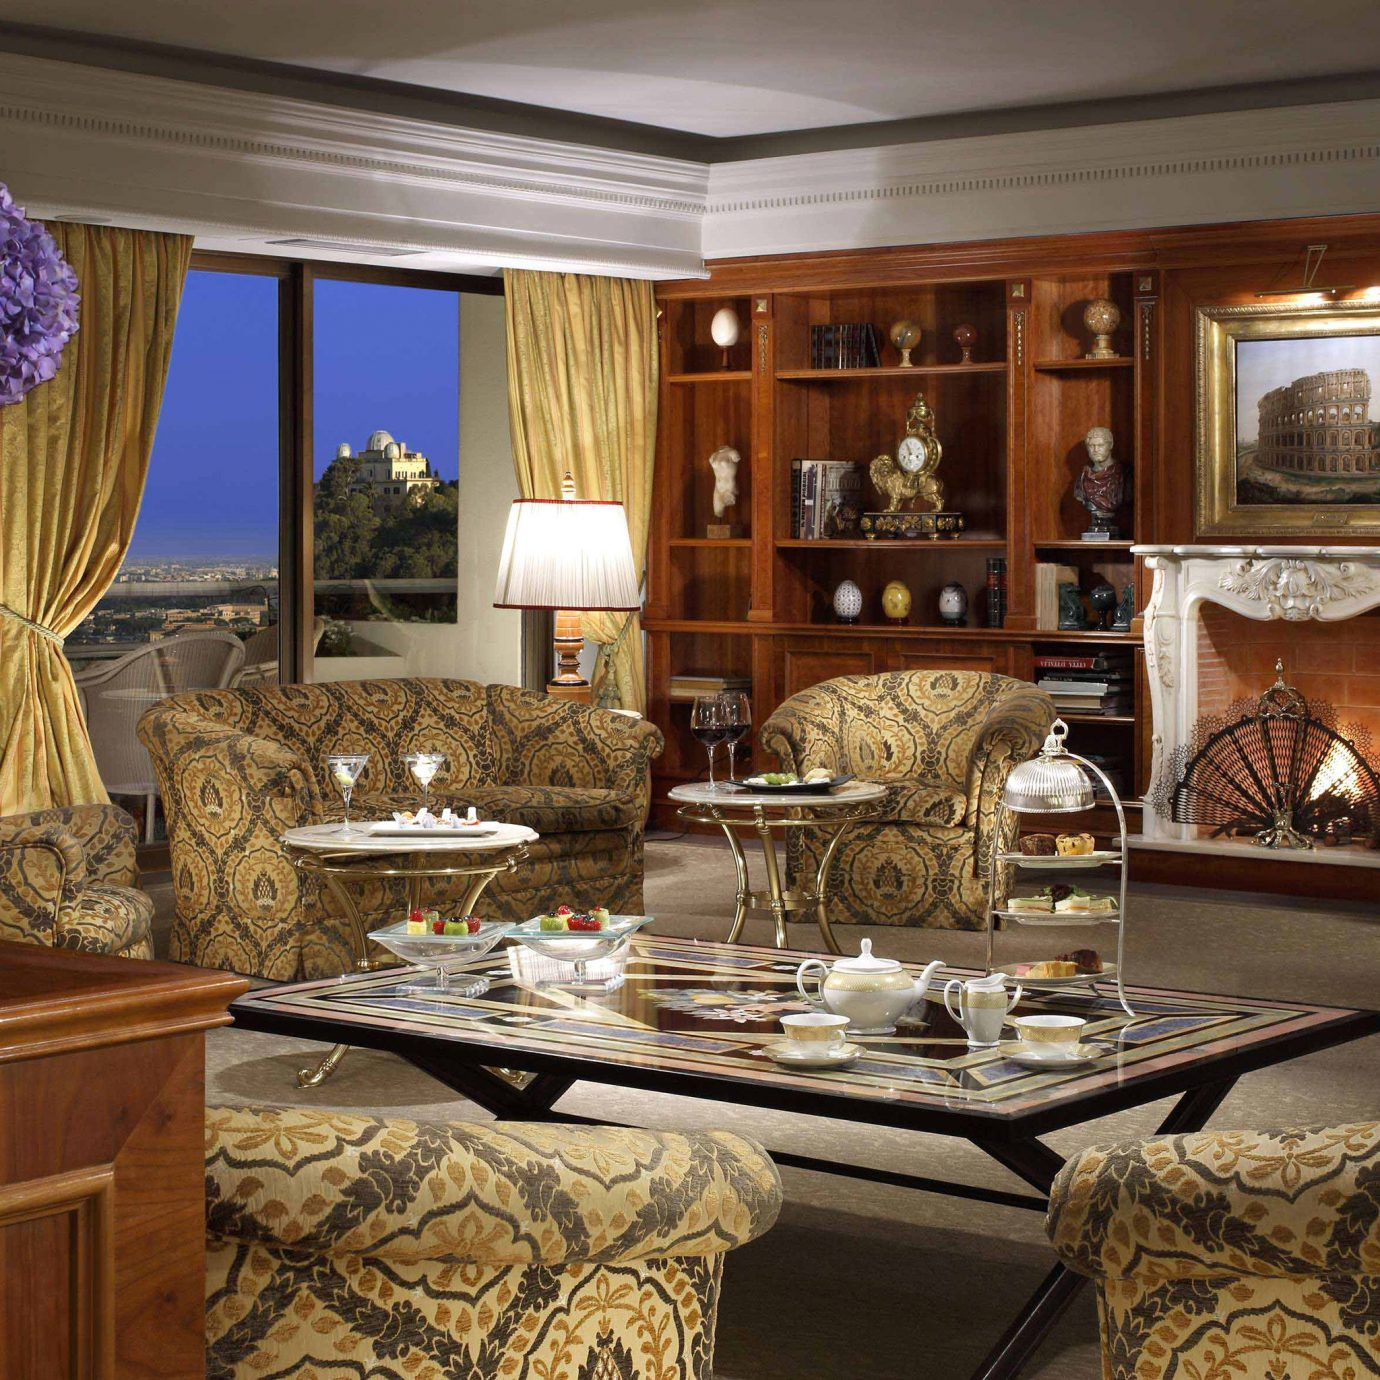 Boutique Hotels City Elegant Italy Luxury Luxury Travel Romantic Hotels Rome property home living room cabinetry Kitchen countertop mansion